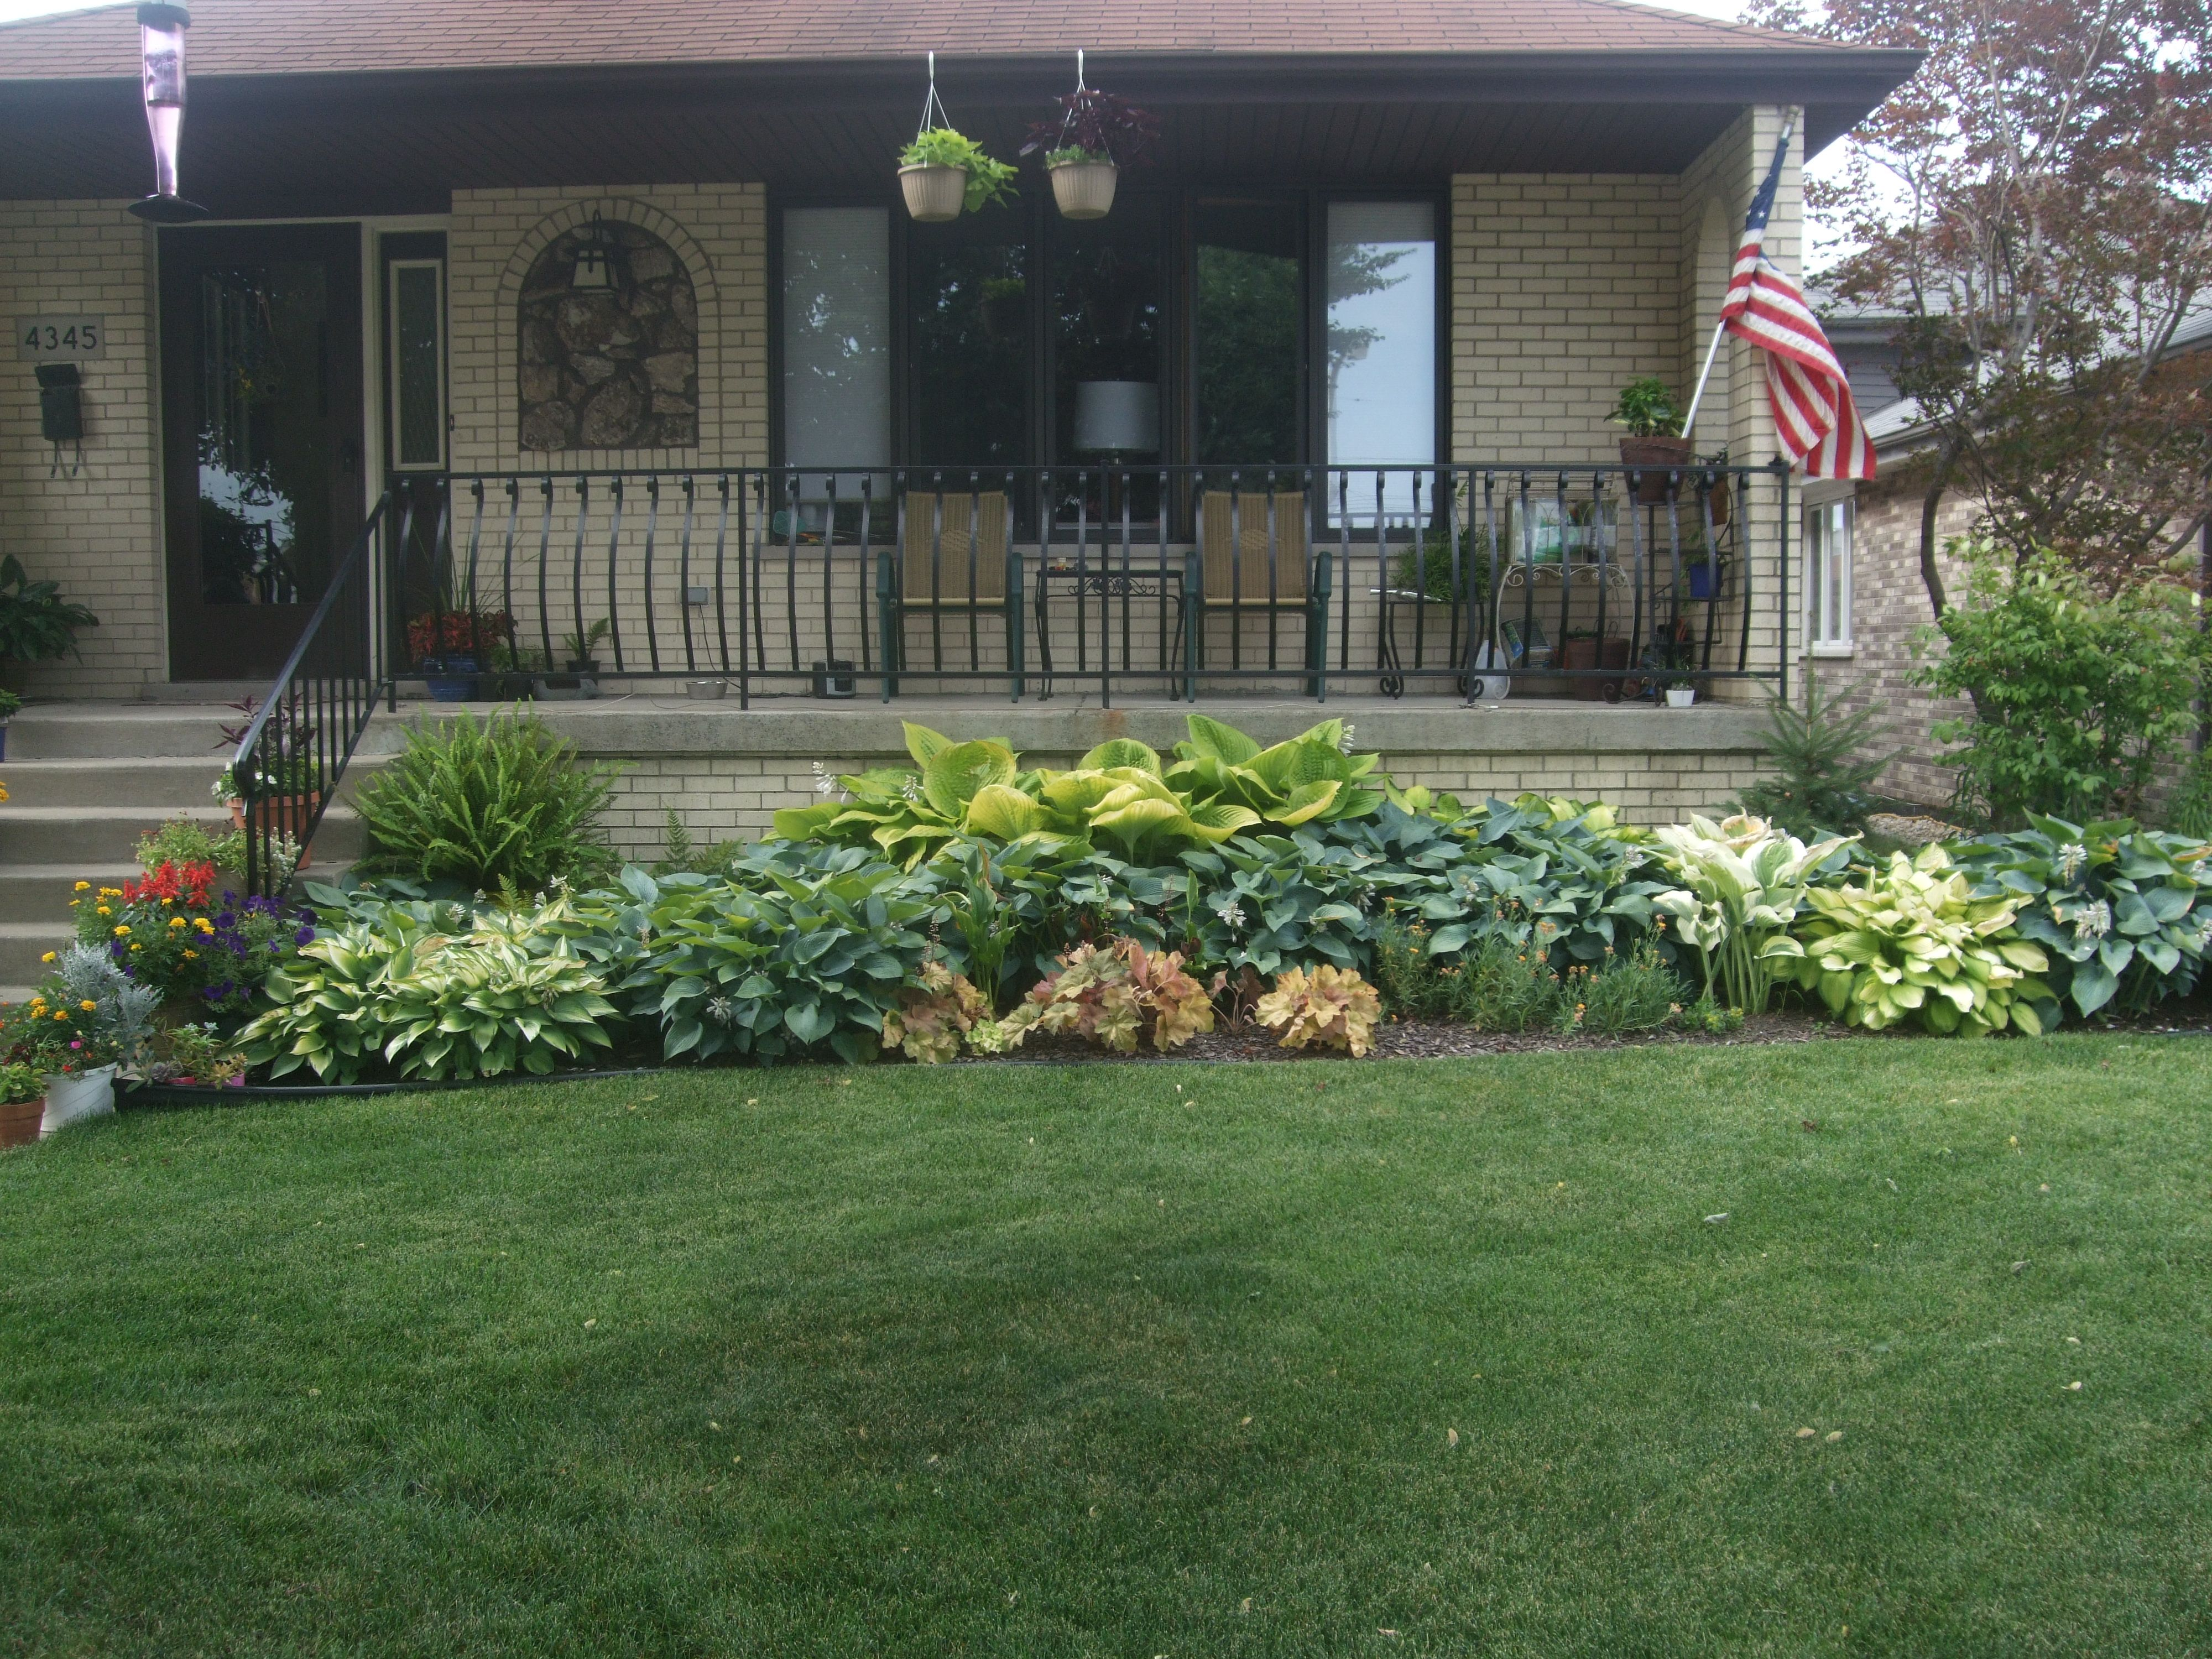 North-facing garden containing a variety of Hostas and ferns